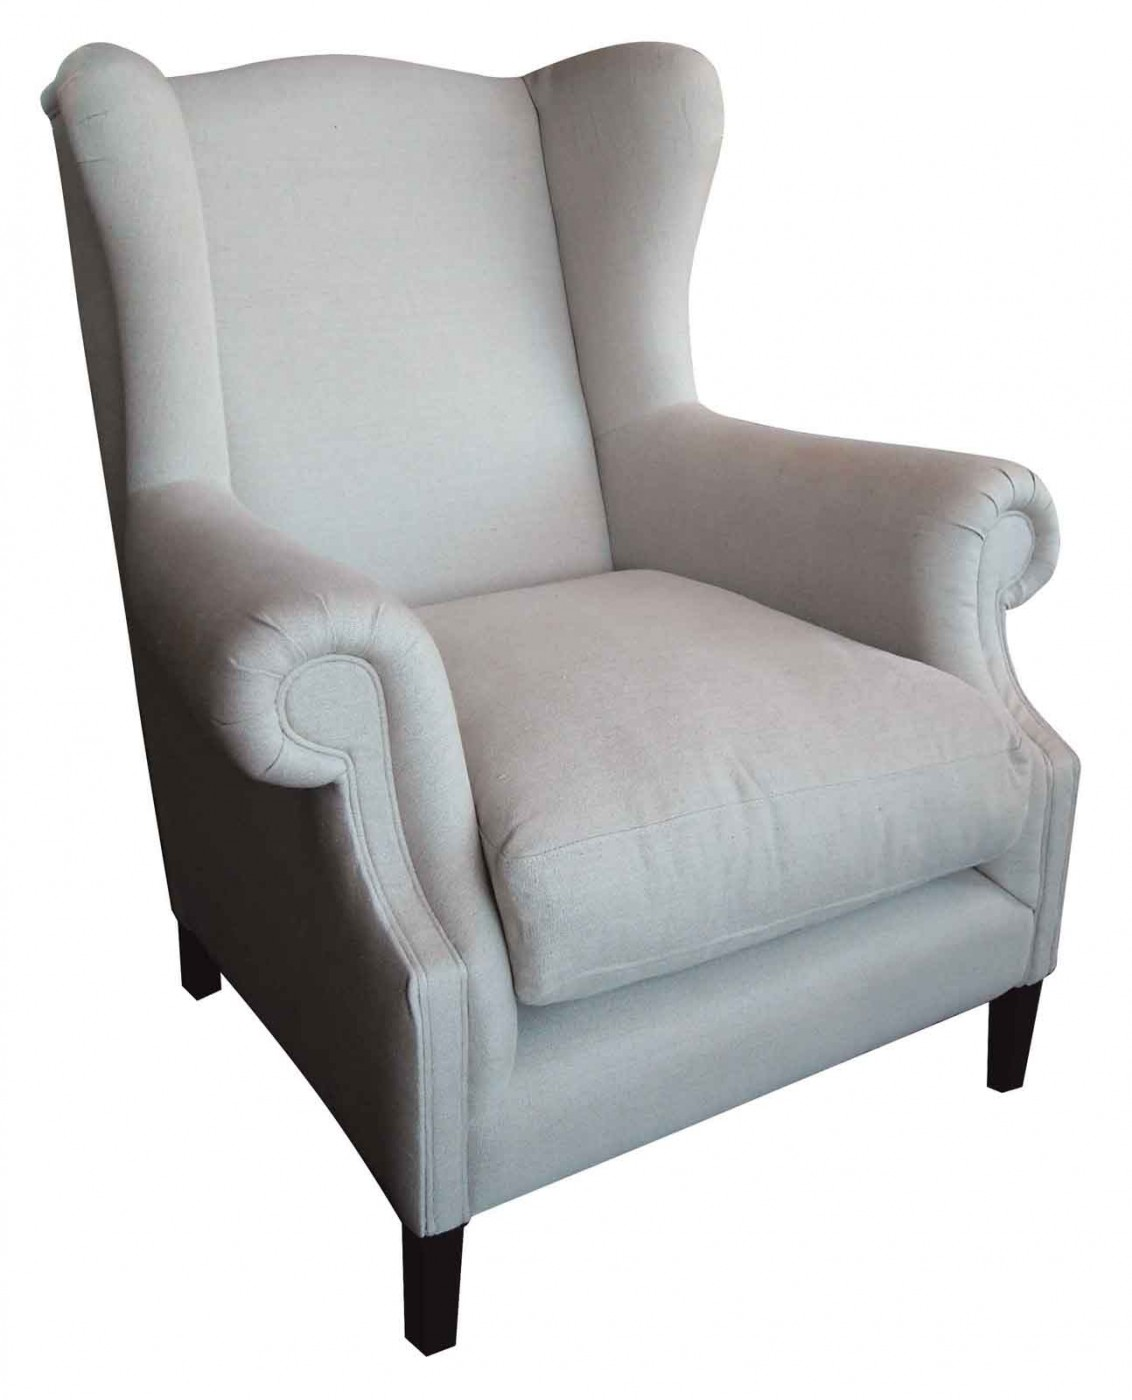 Elegant wing back chair with Solid Strong wood Furniture Design for Dining chair and Living Room Chair Ideas